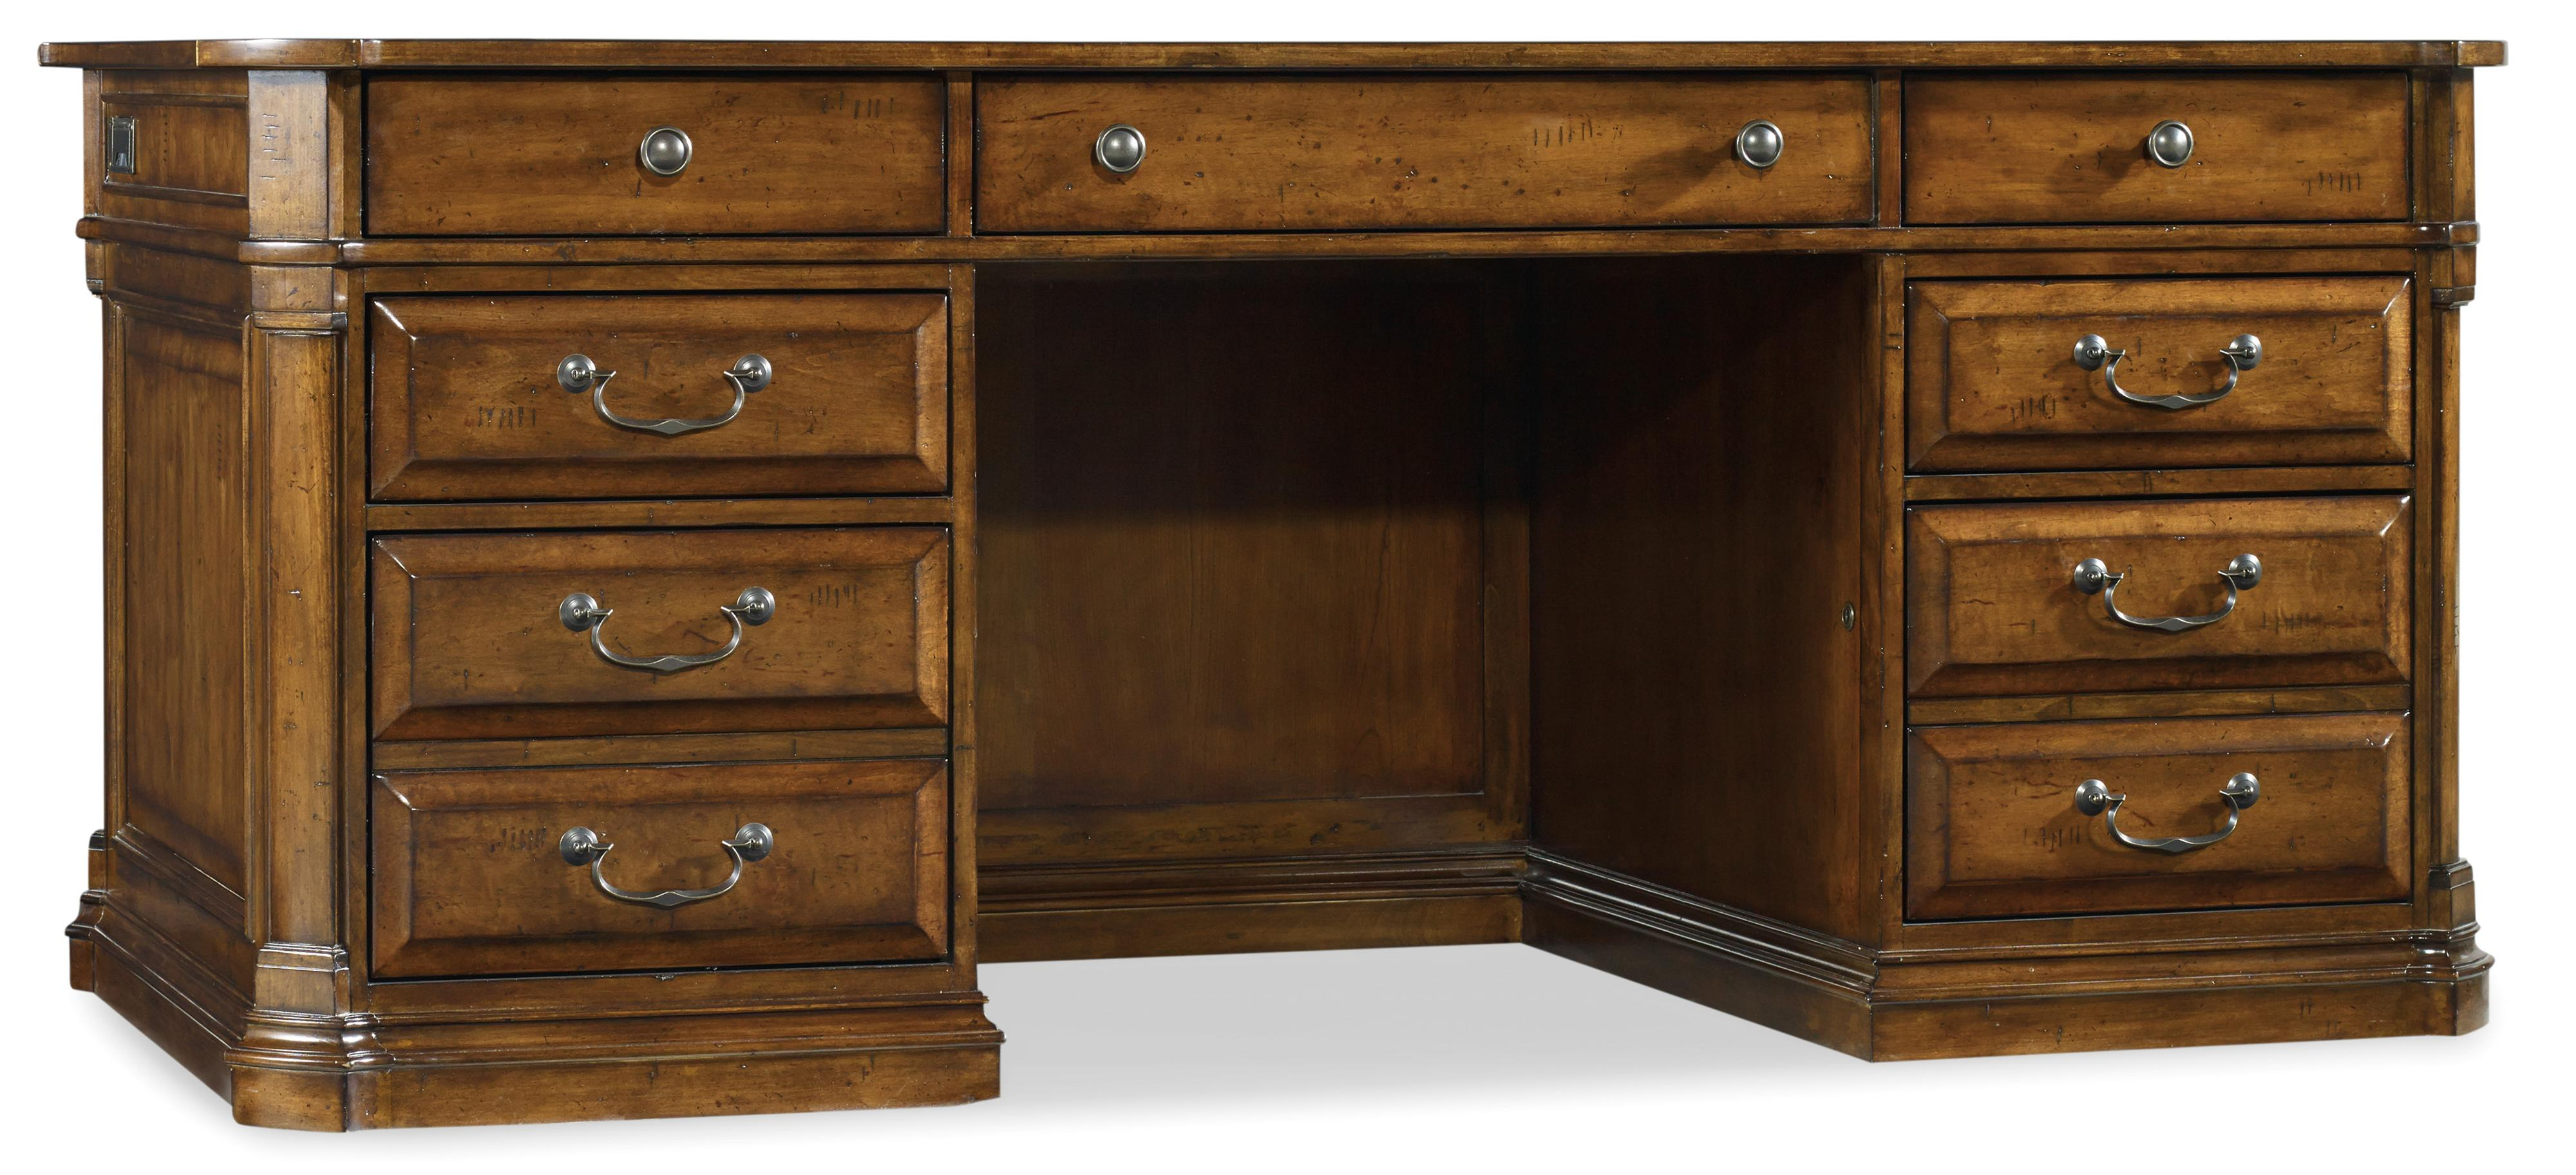 insight furniture european style desk executive brookhaven peerless sauder hooker edge most rhapsody water